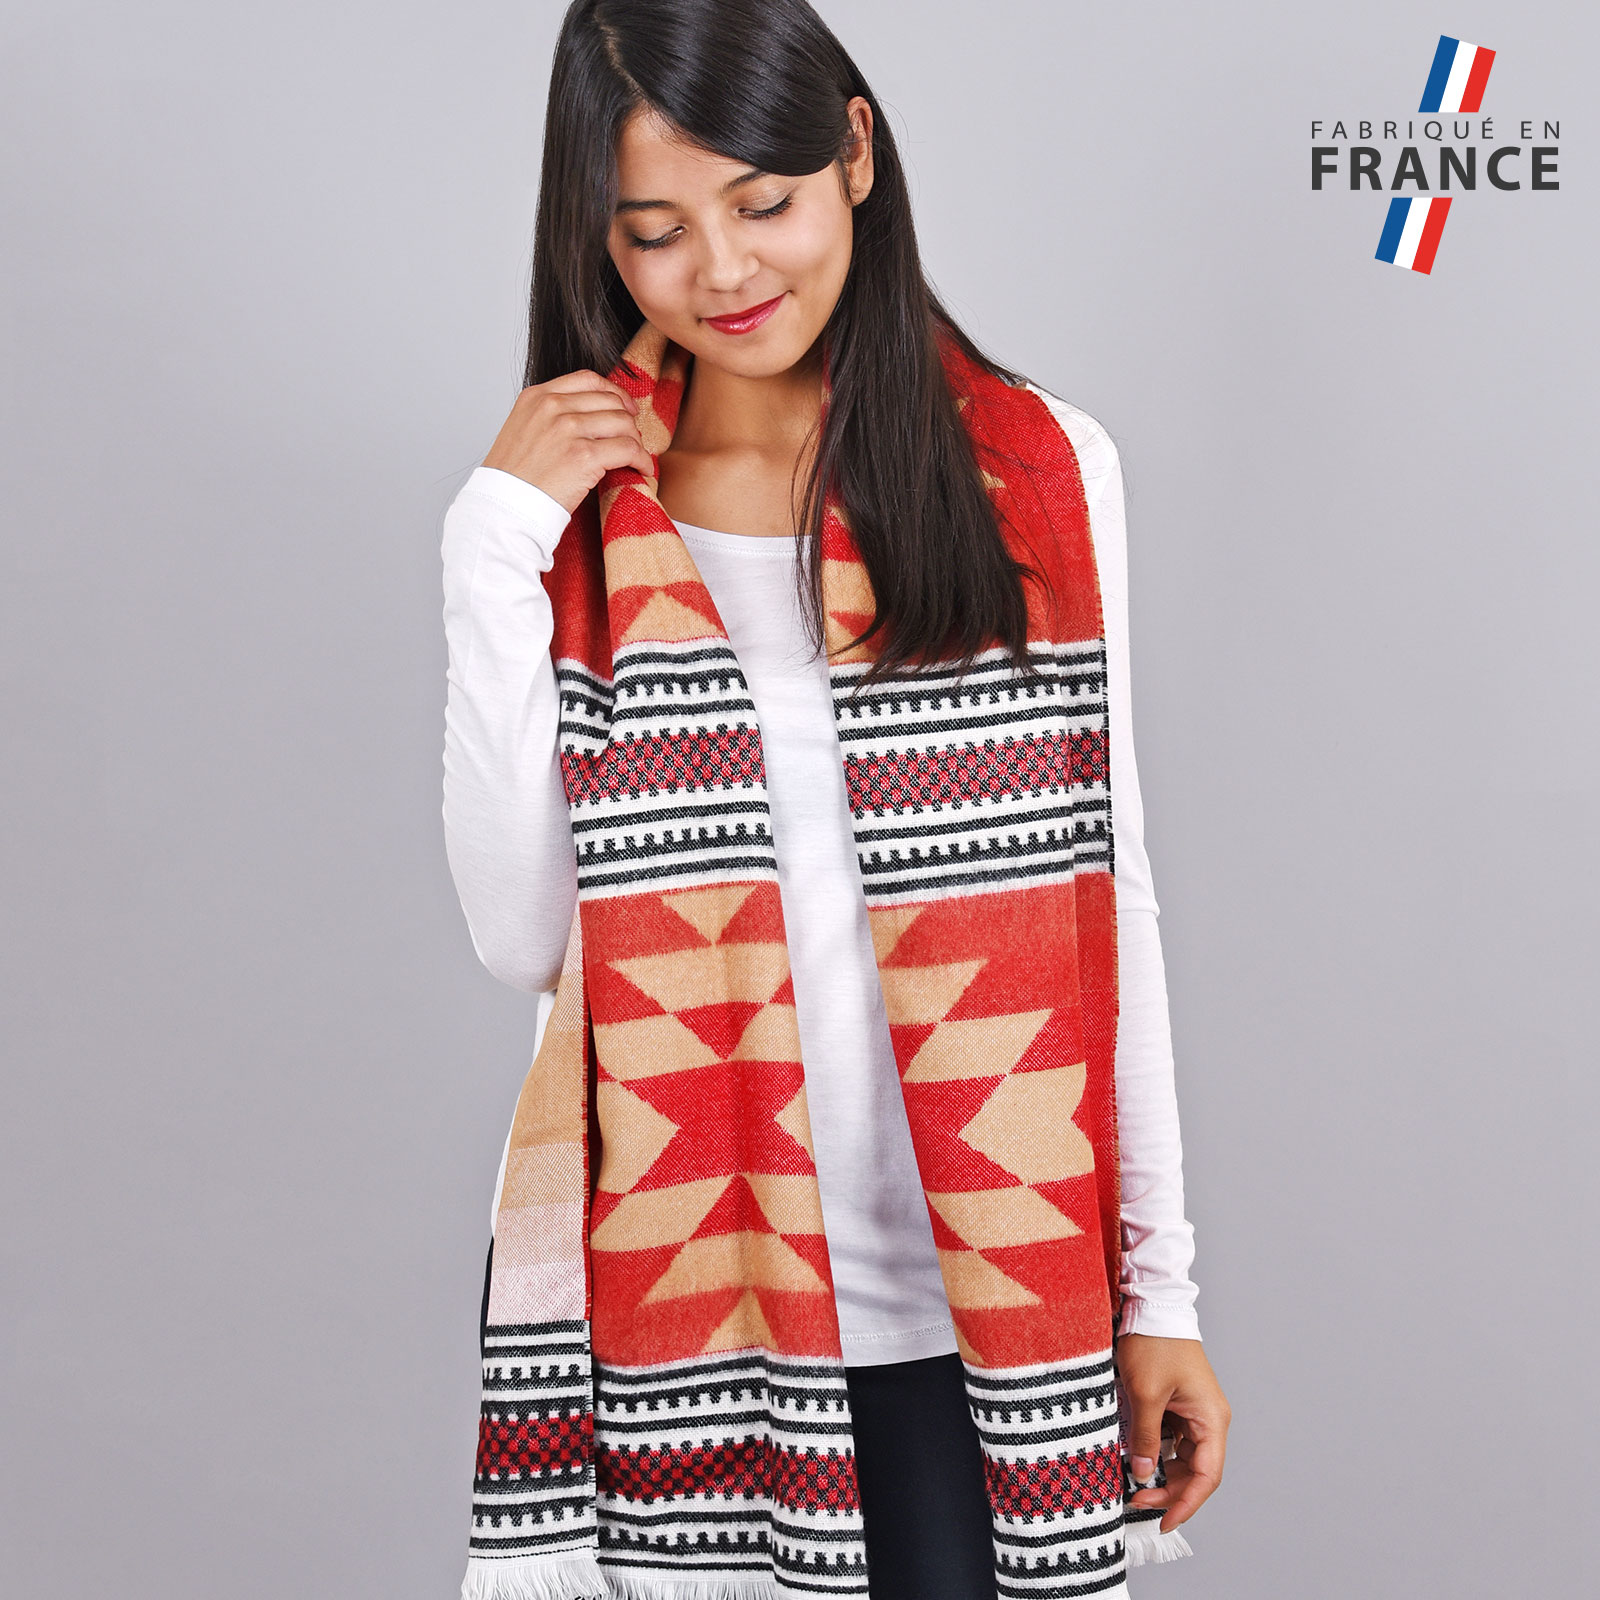 AT-04162-VF16-2-LB_FR-chale-rouge-franges-azteque